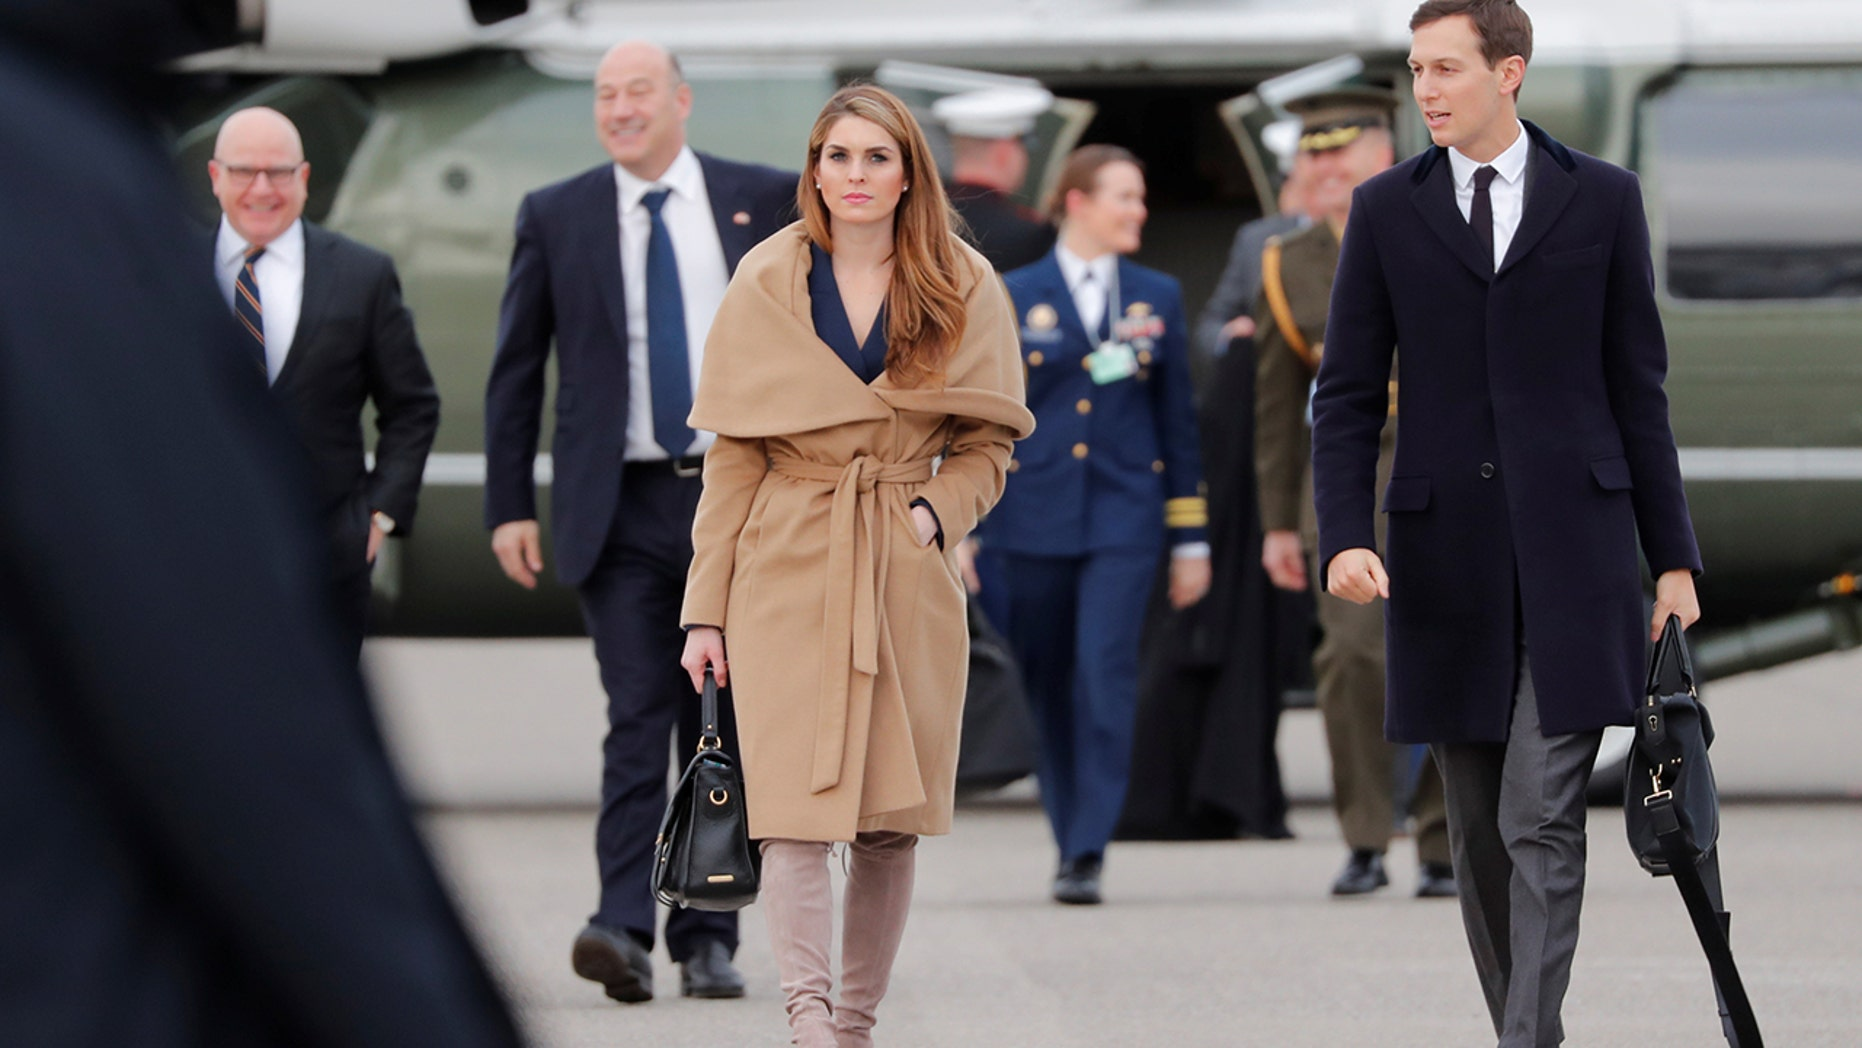 The White House communications director stunned in a pair of taupe suede, thigh-high Stuart Weitzman boots, priced at $798, and a navy blue wrap dress.